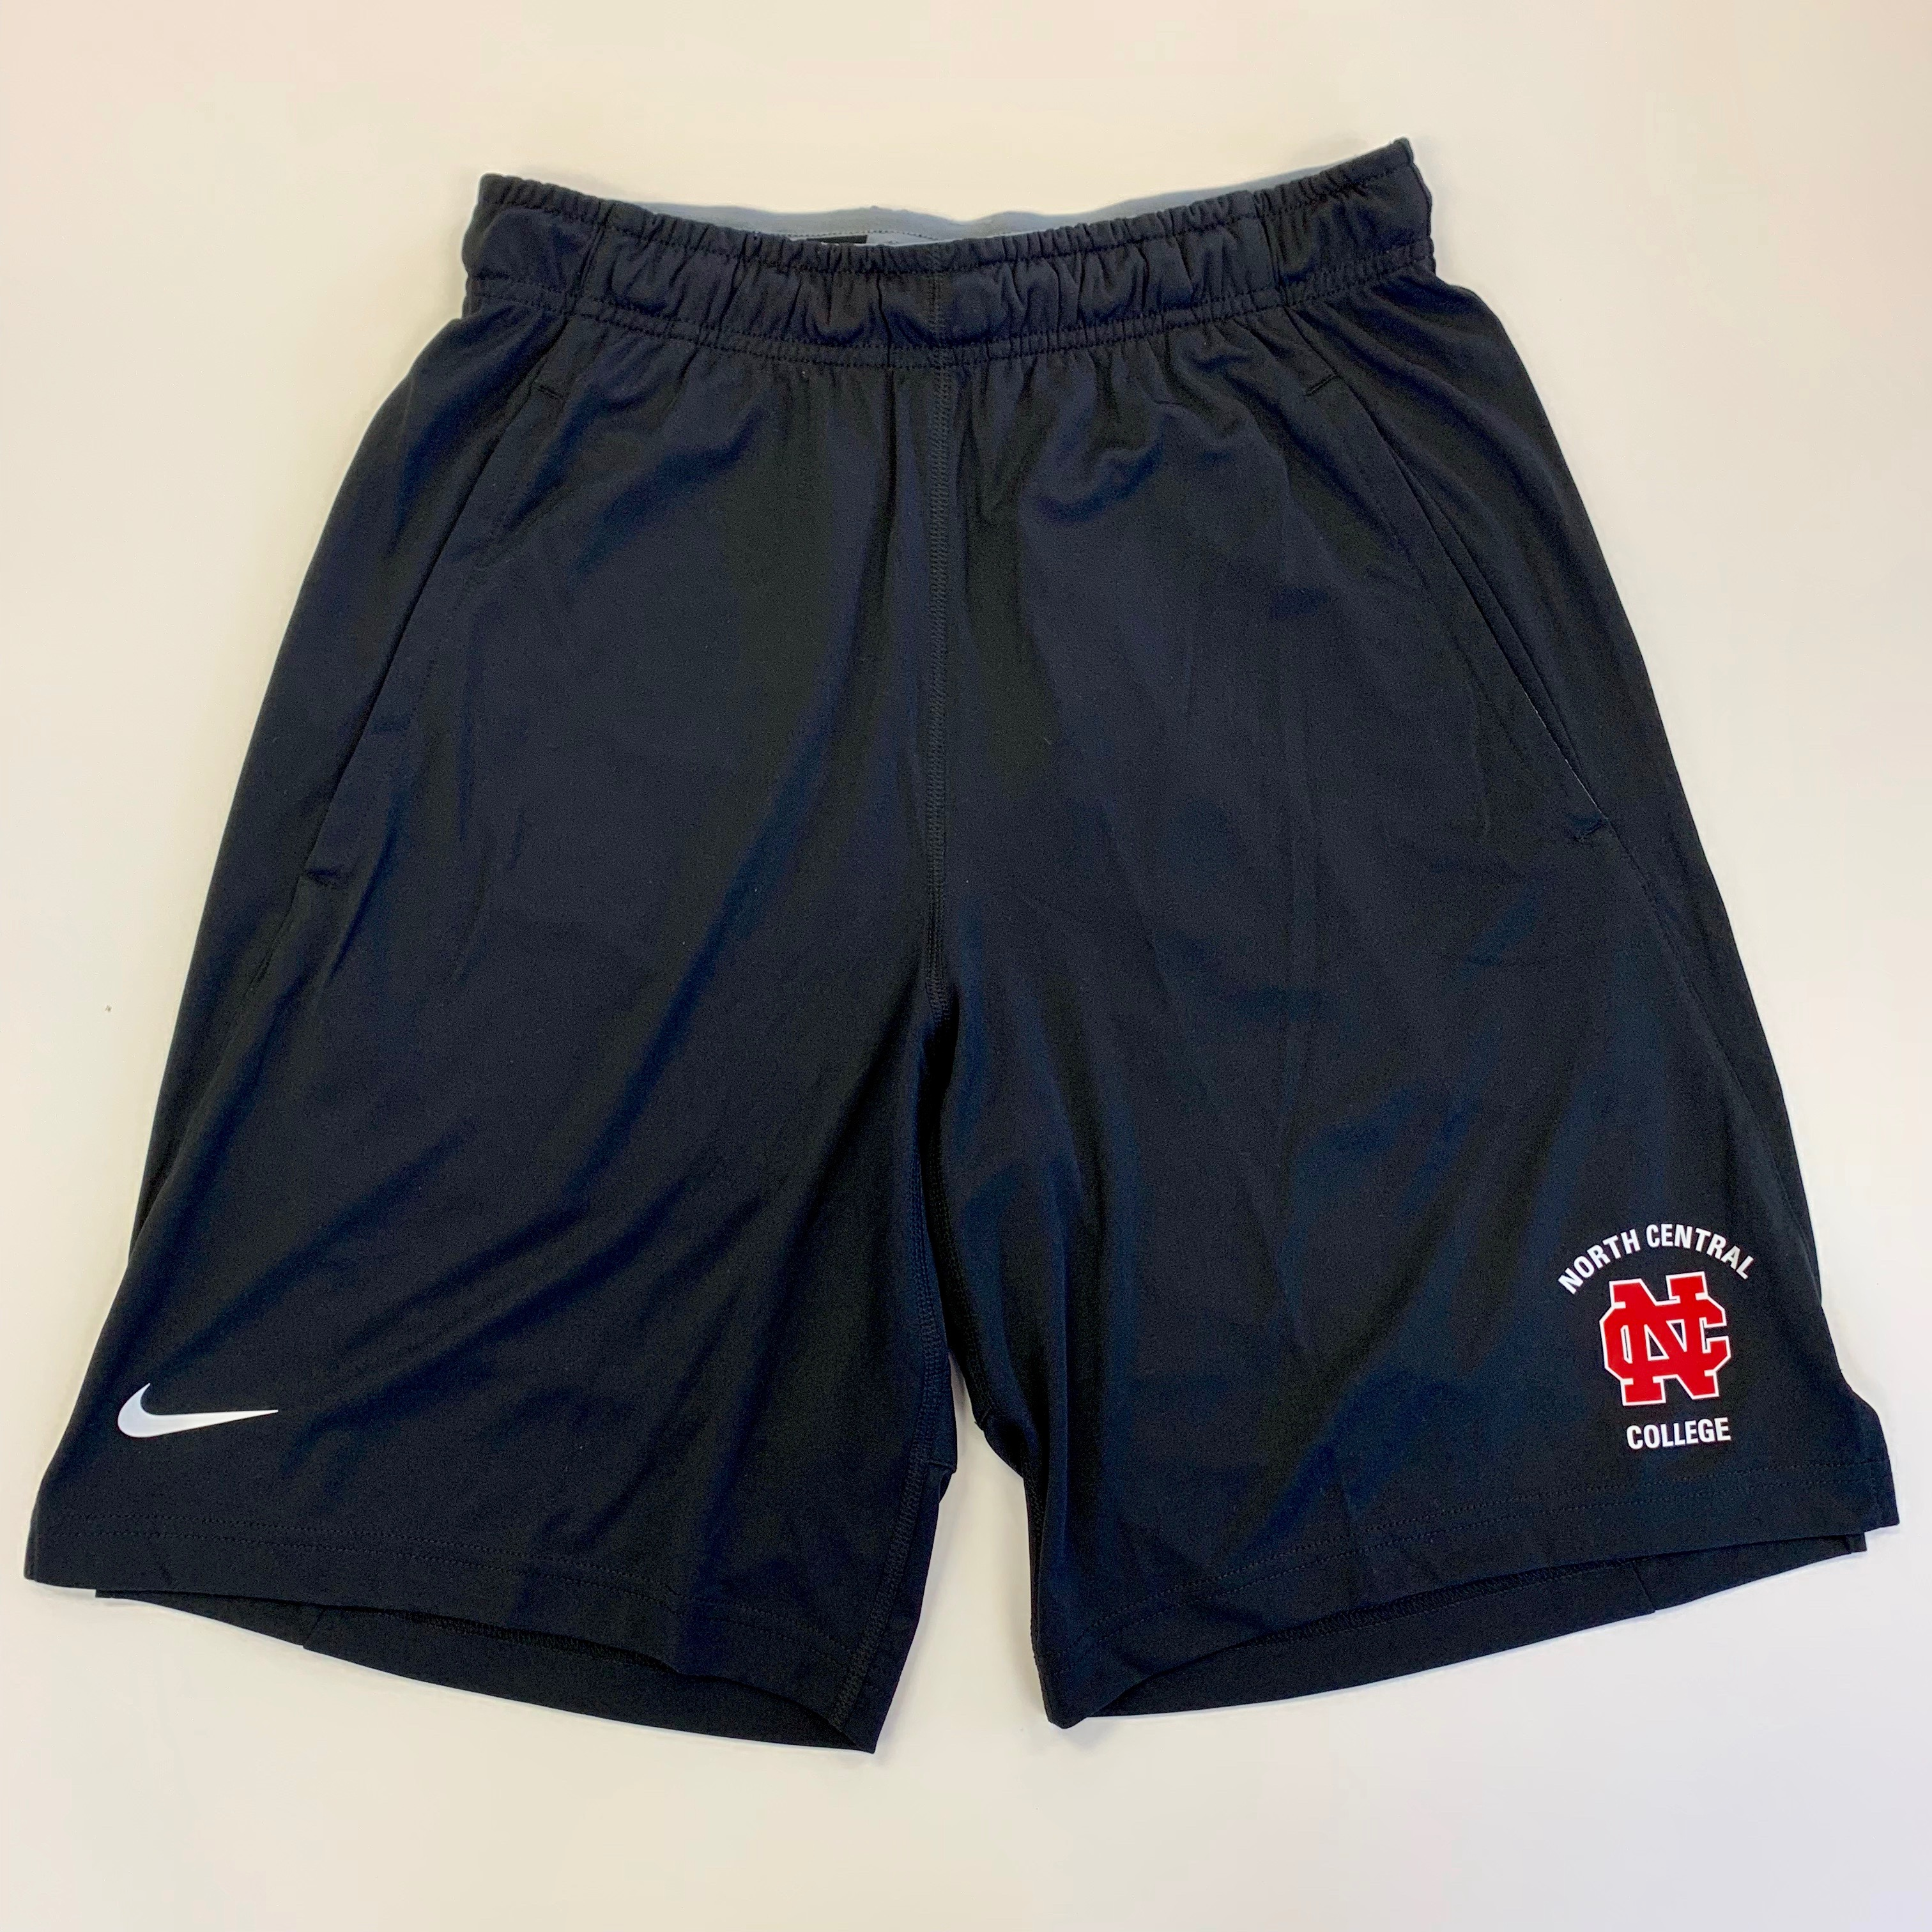 Image for the Nike Fly Short 2.0 product